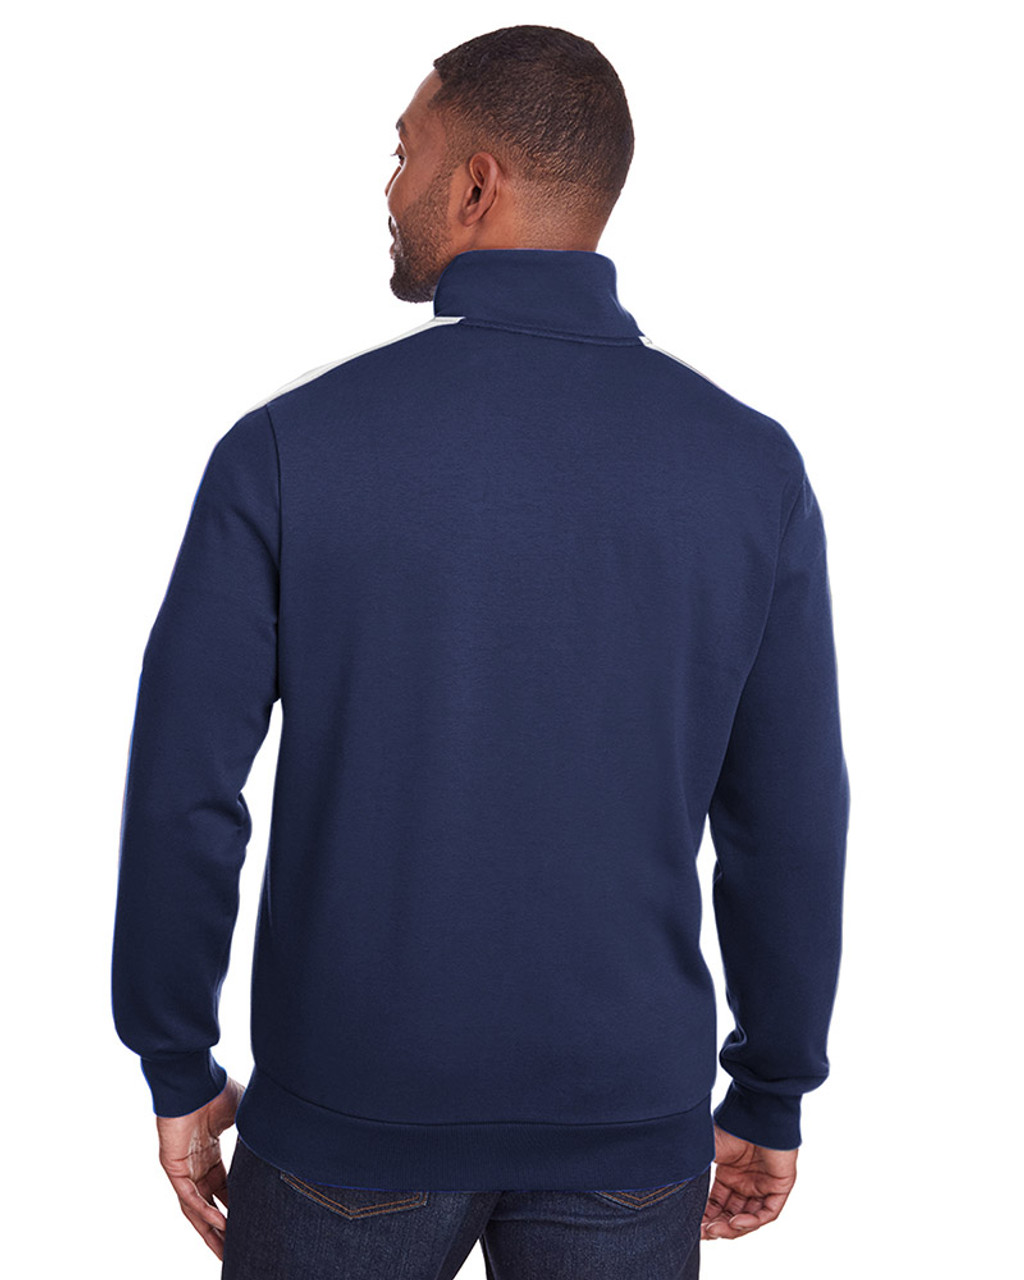 Peacoat/Quiet Shade - back, 597021 Puma Sport Adult P48 Fleece Track Jacket | Blankclothing.ca